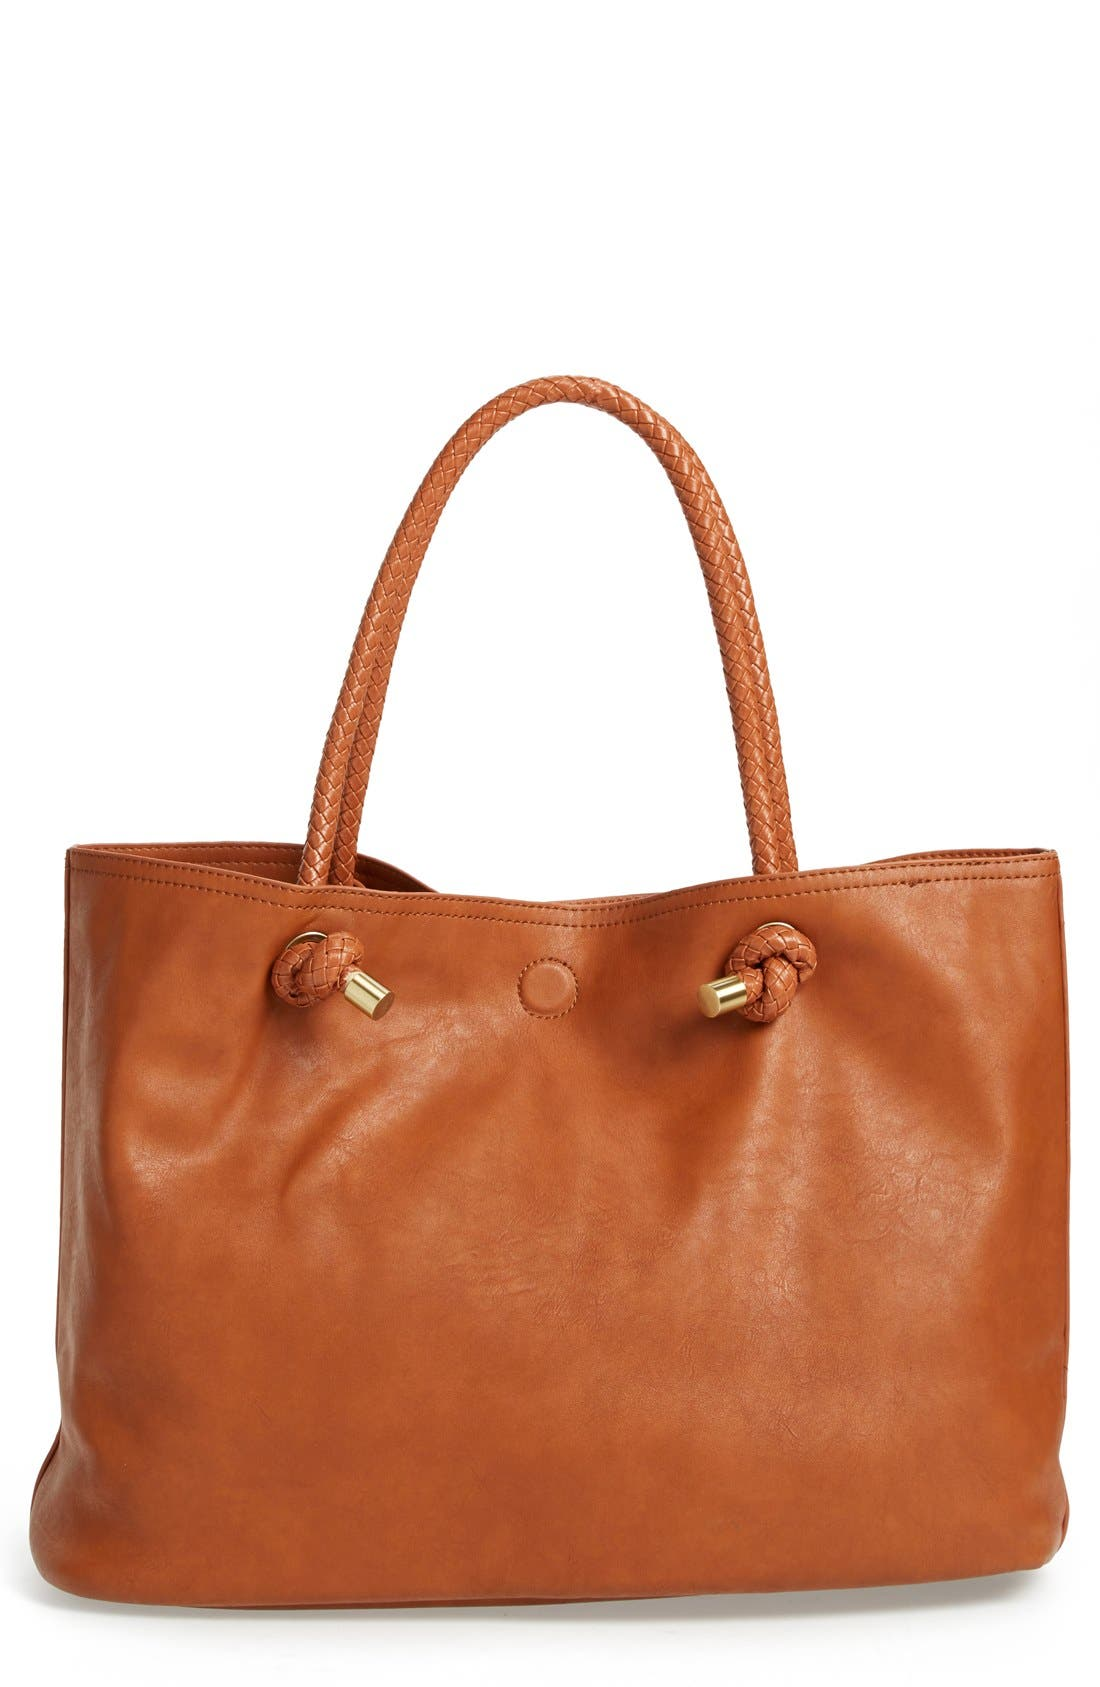 Main Image - Sole Society Braided Handle Faux Leather Tote